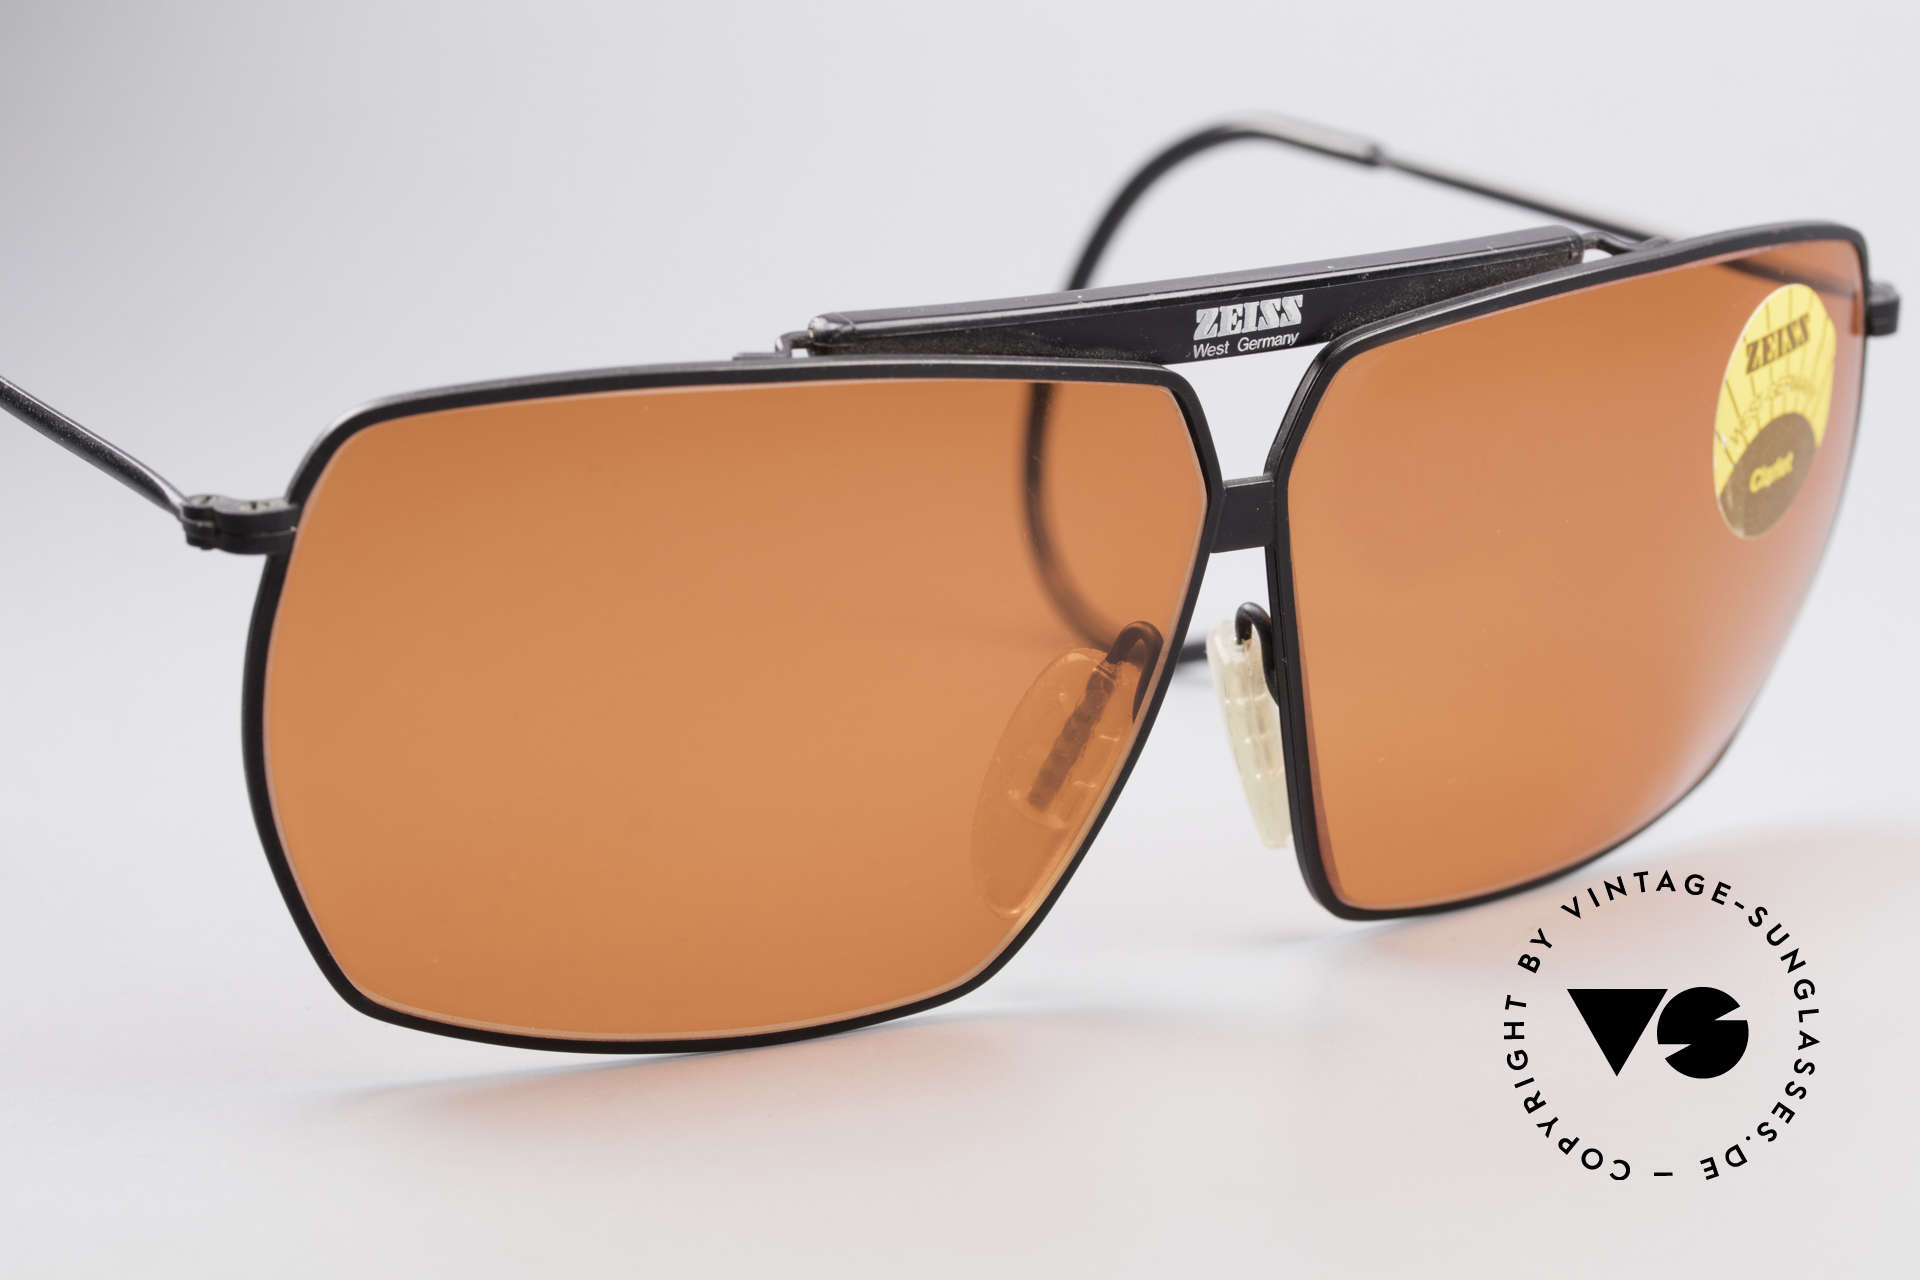 Zeiss 9909 XL Vintage Sunglasses Sport, never worn; like all our rare vintage eyewear by Zeiss, Made for Men